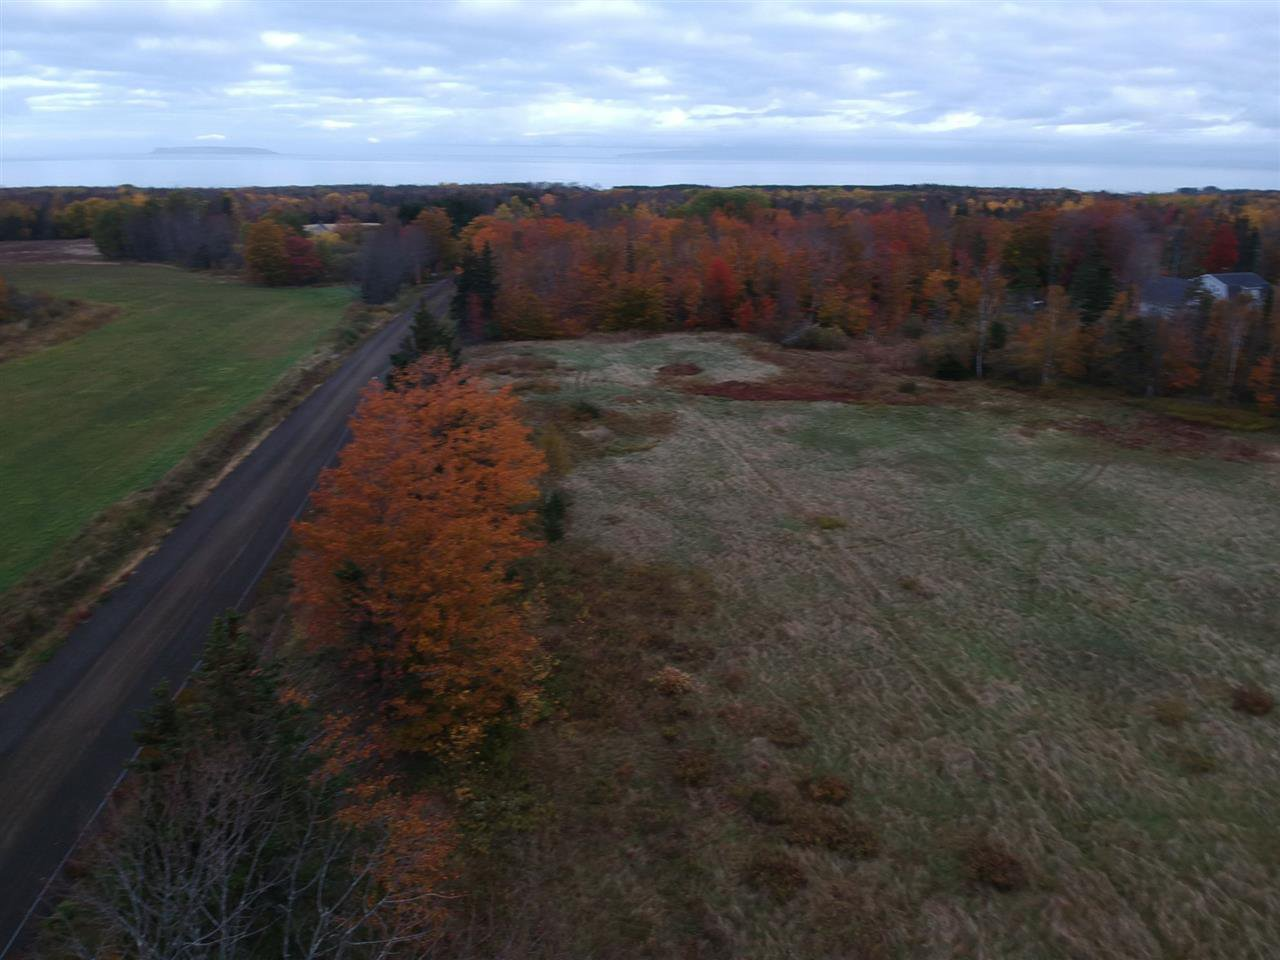 Main Photo: Lot Nollett Beckwith Road in Burlington: 404-Kings County Vacant Land for sale (Annapolis Valley)  : MLS®# 202021749